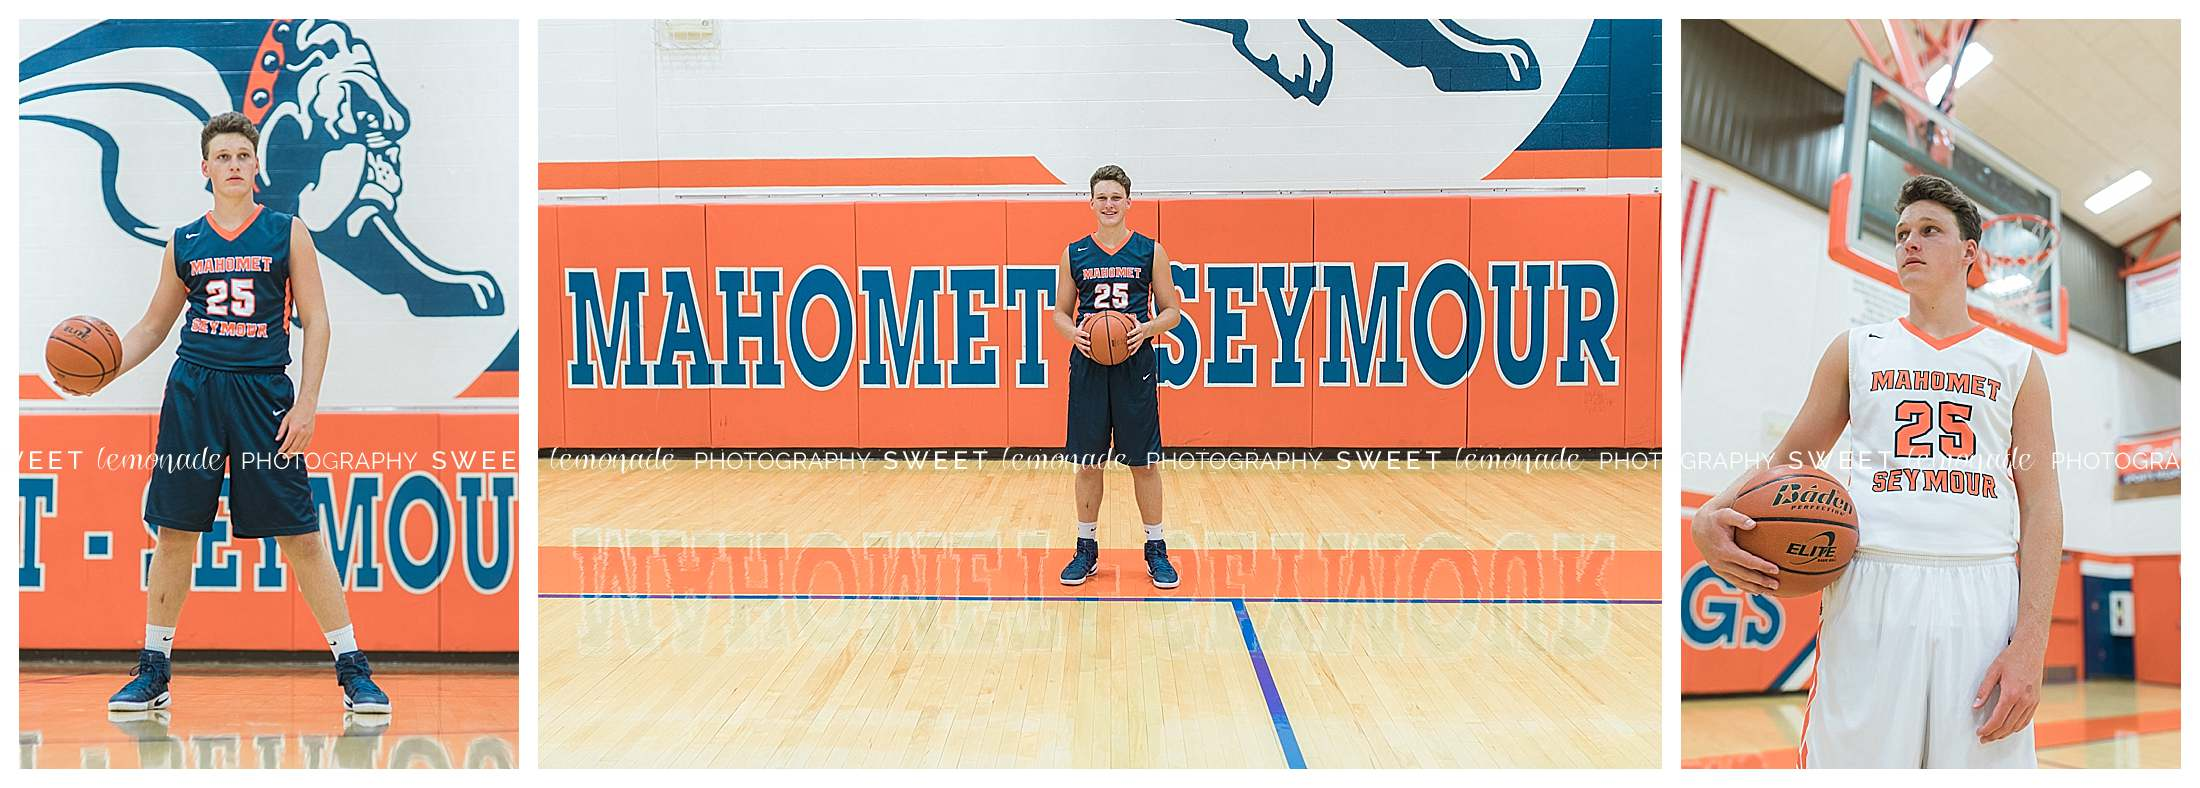 mahomet-bulldogs-basketball-champaign-county-illinois-senior-photography_1593.jpg